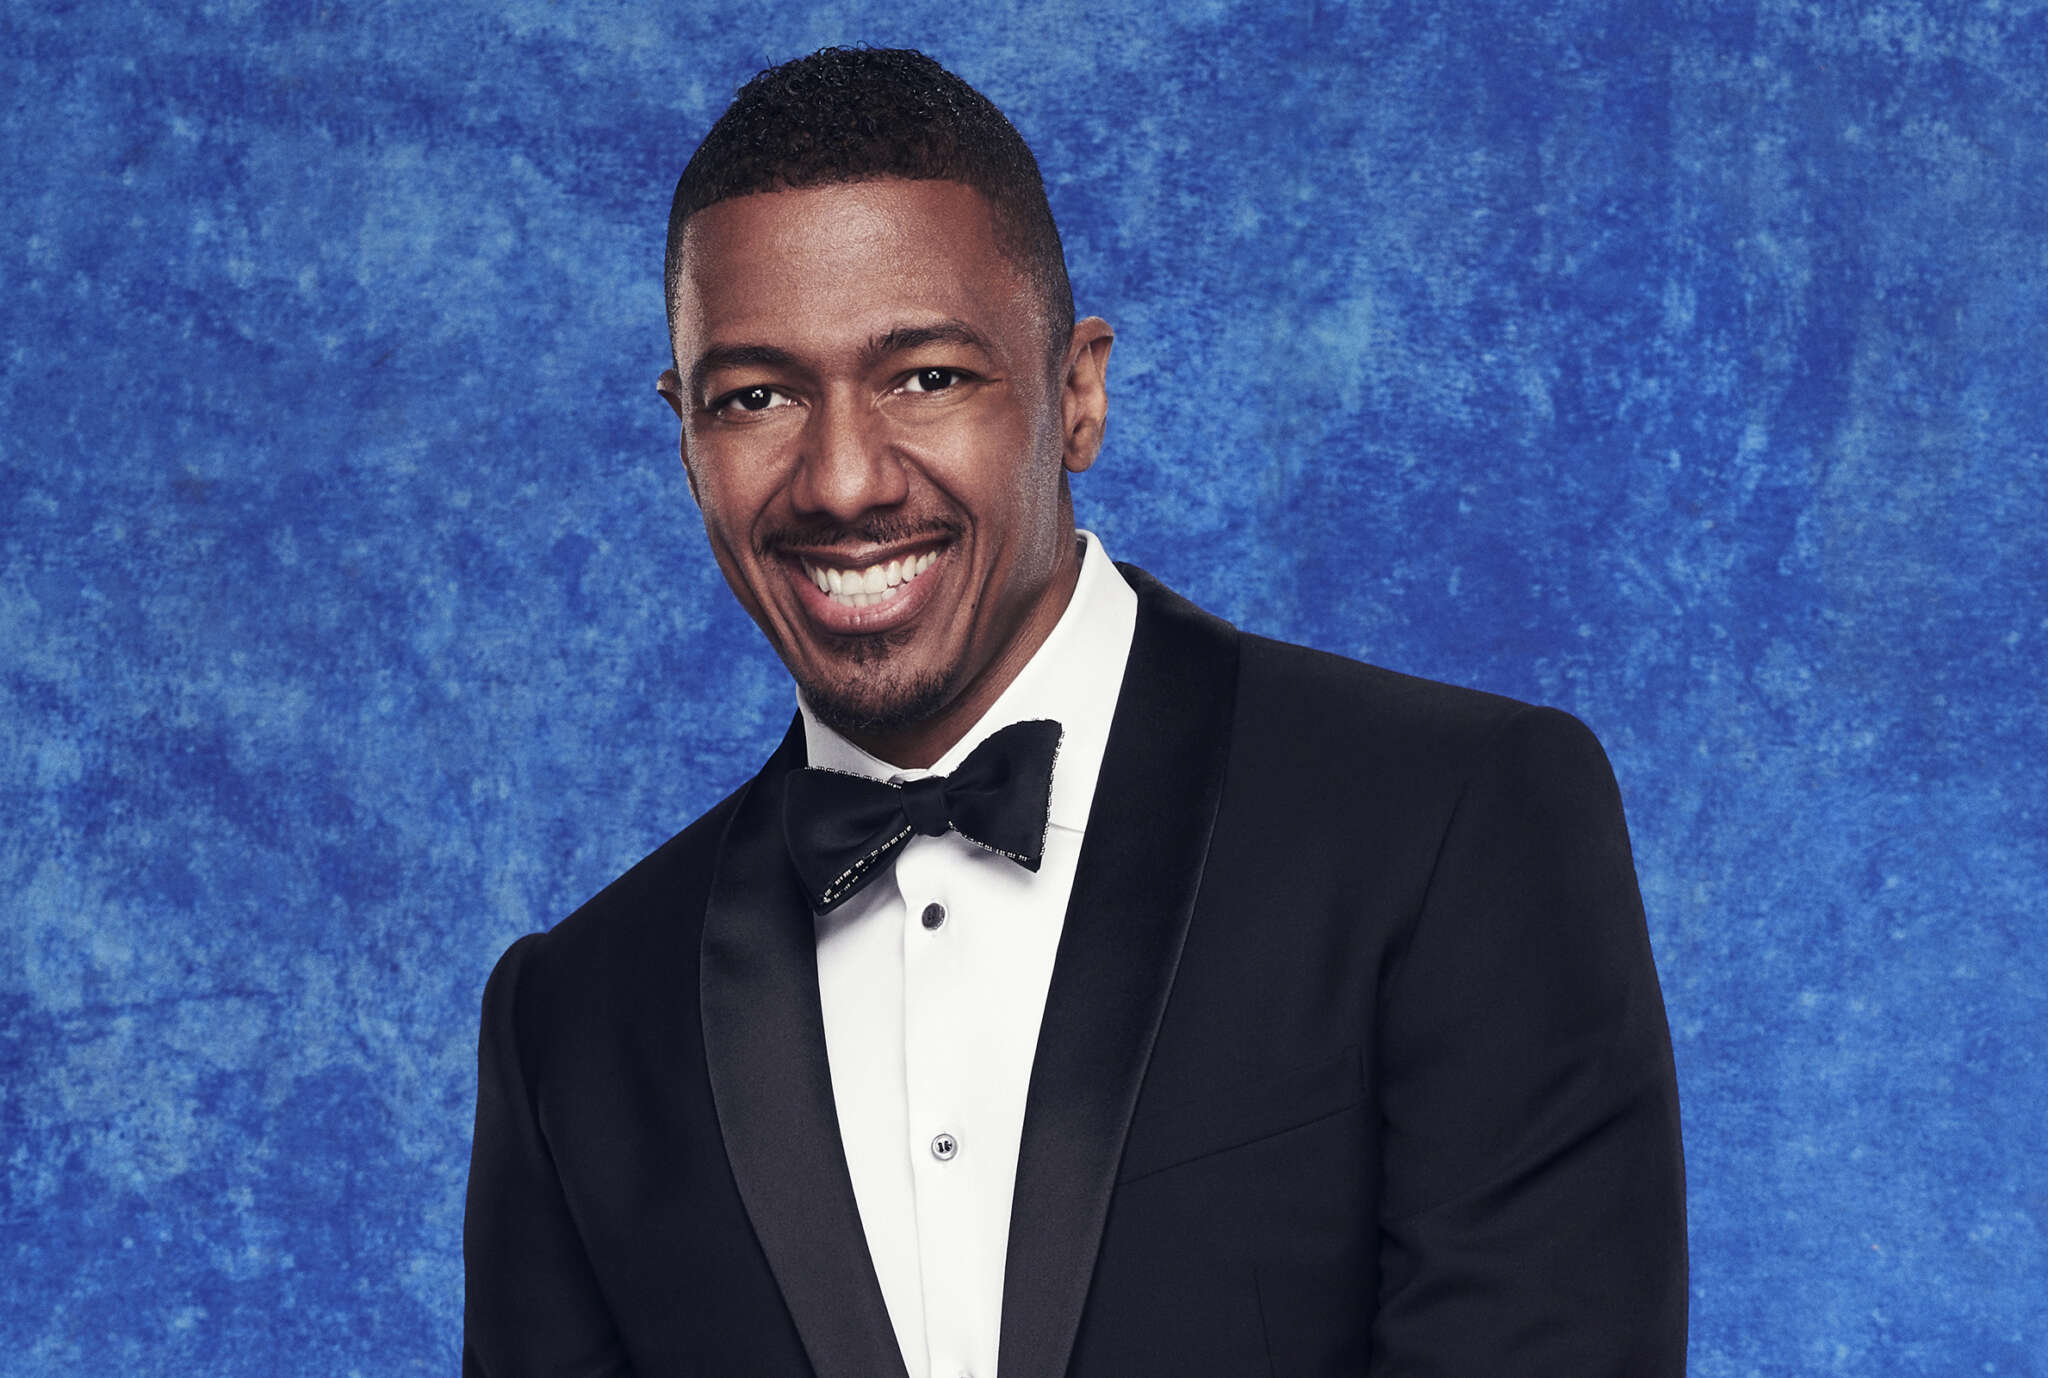 """nick-cannon-is-tested-positive-for-covid-19-heres-whos-filling-in-for-him-as-host-of-the-masked-singer"""